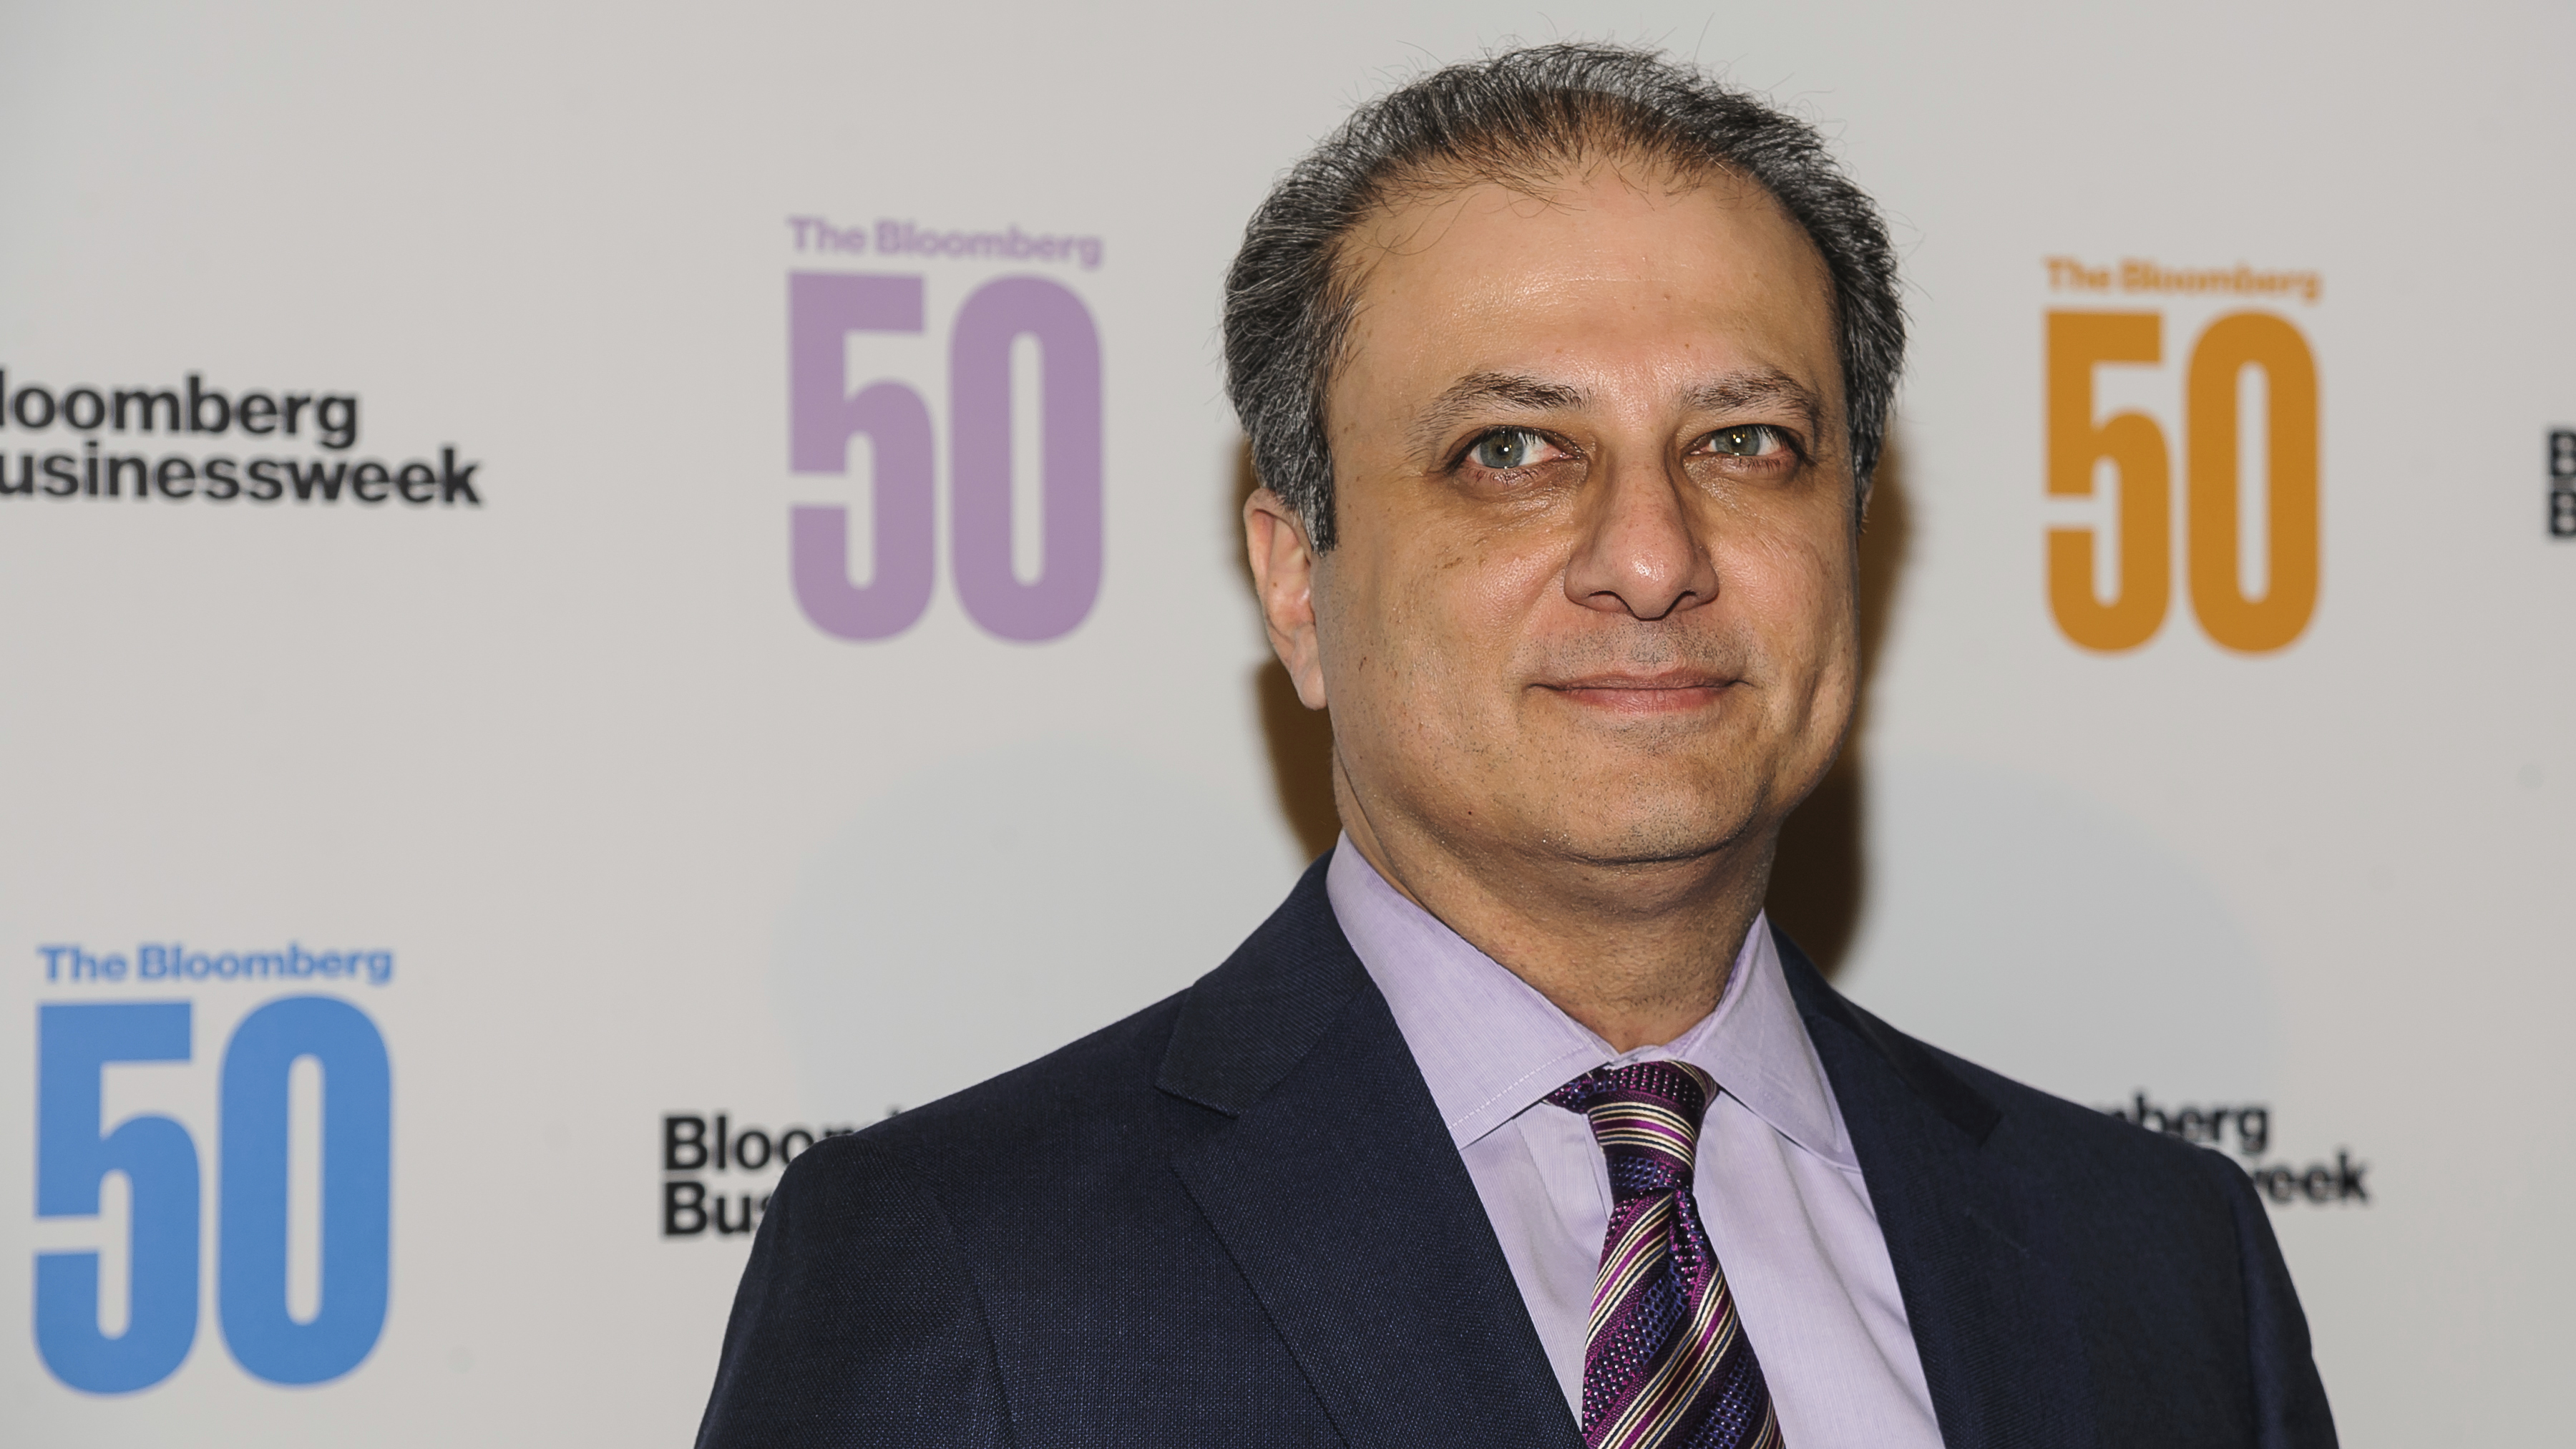 Fired By Trump, Preet Bharara Describes The Justice System He Served